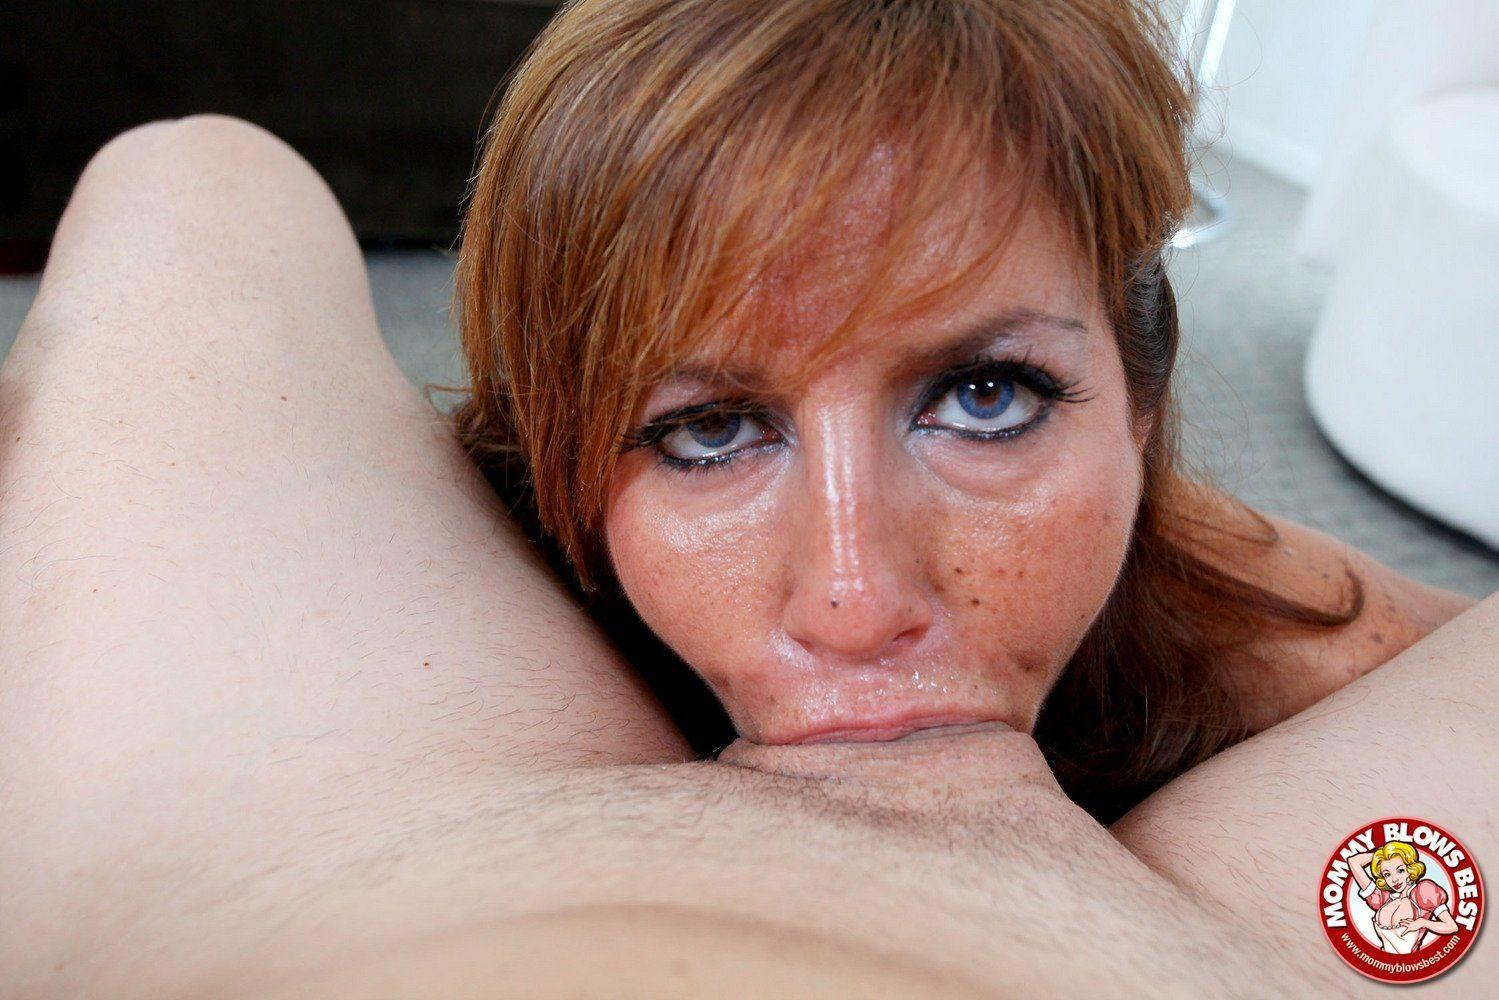 Redheads That Deepthroat Hq Porno Free Site Compilation Comments 3